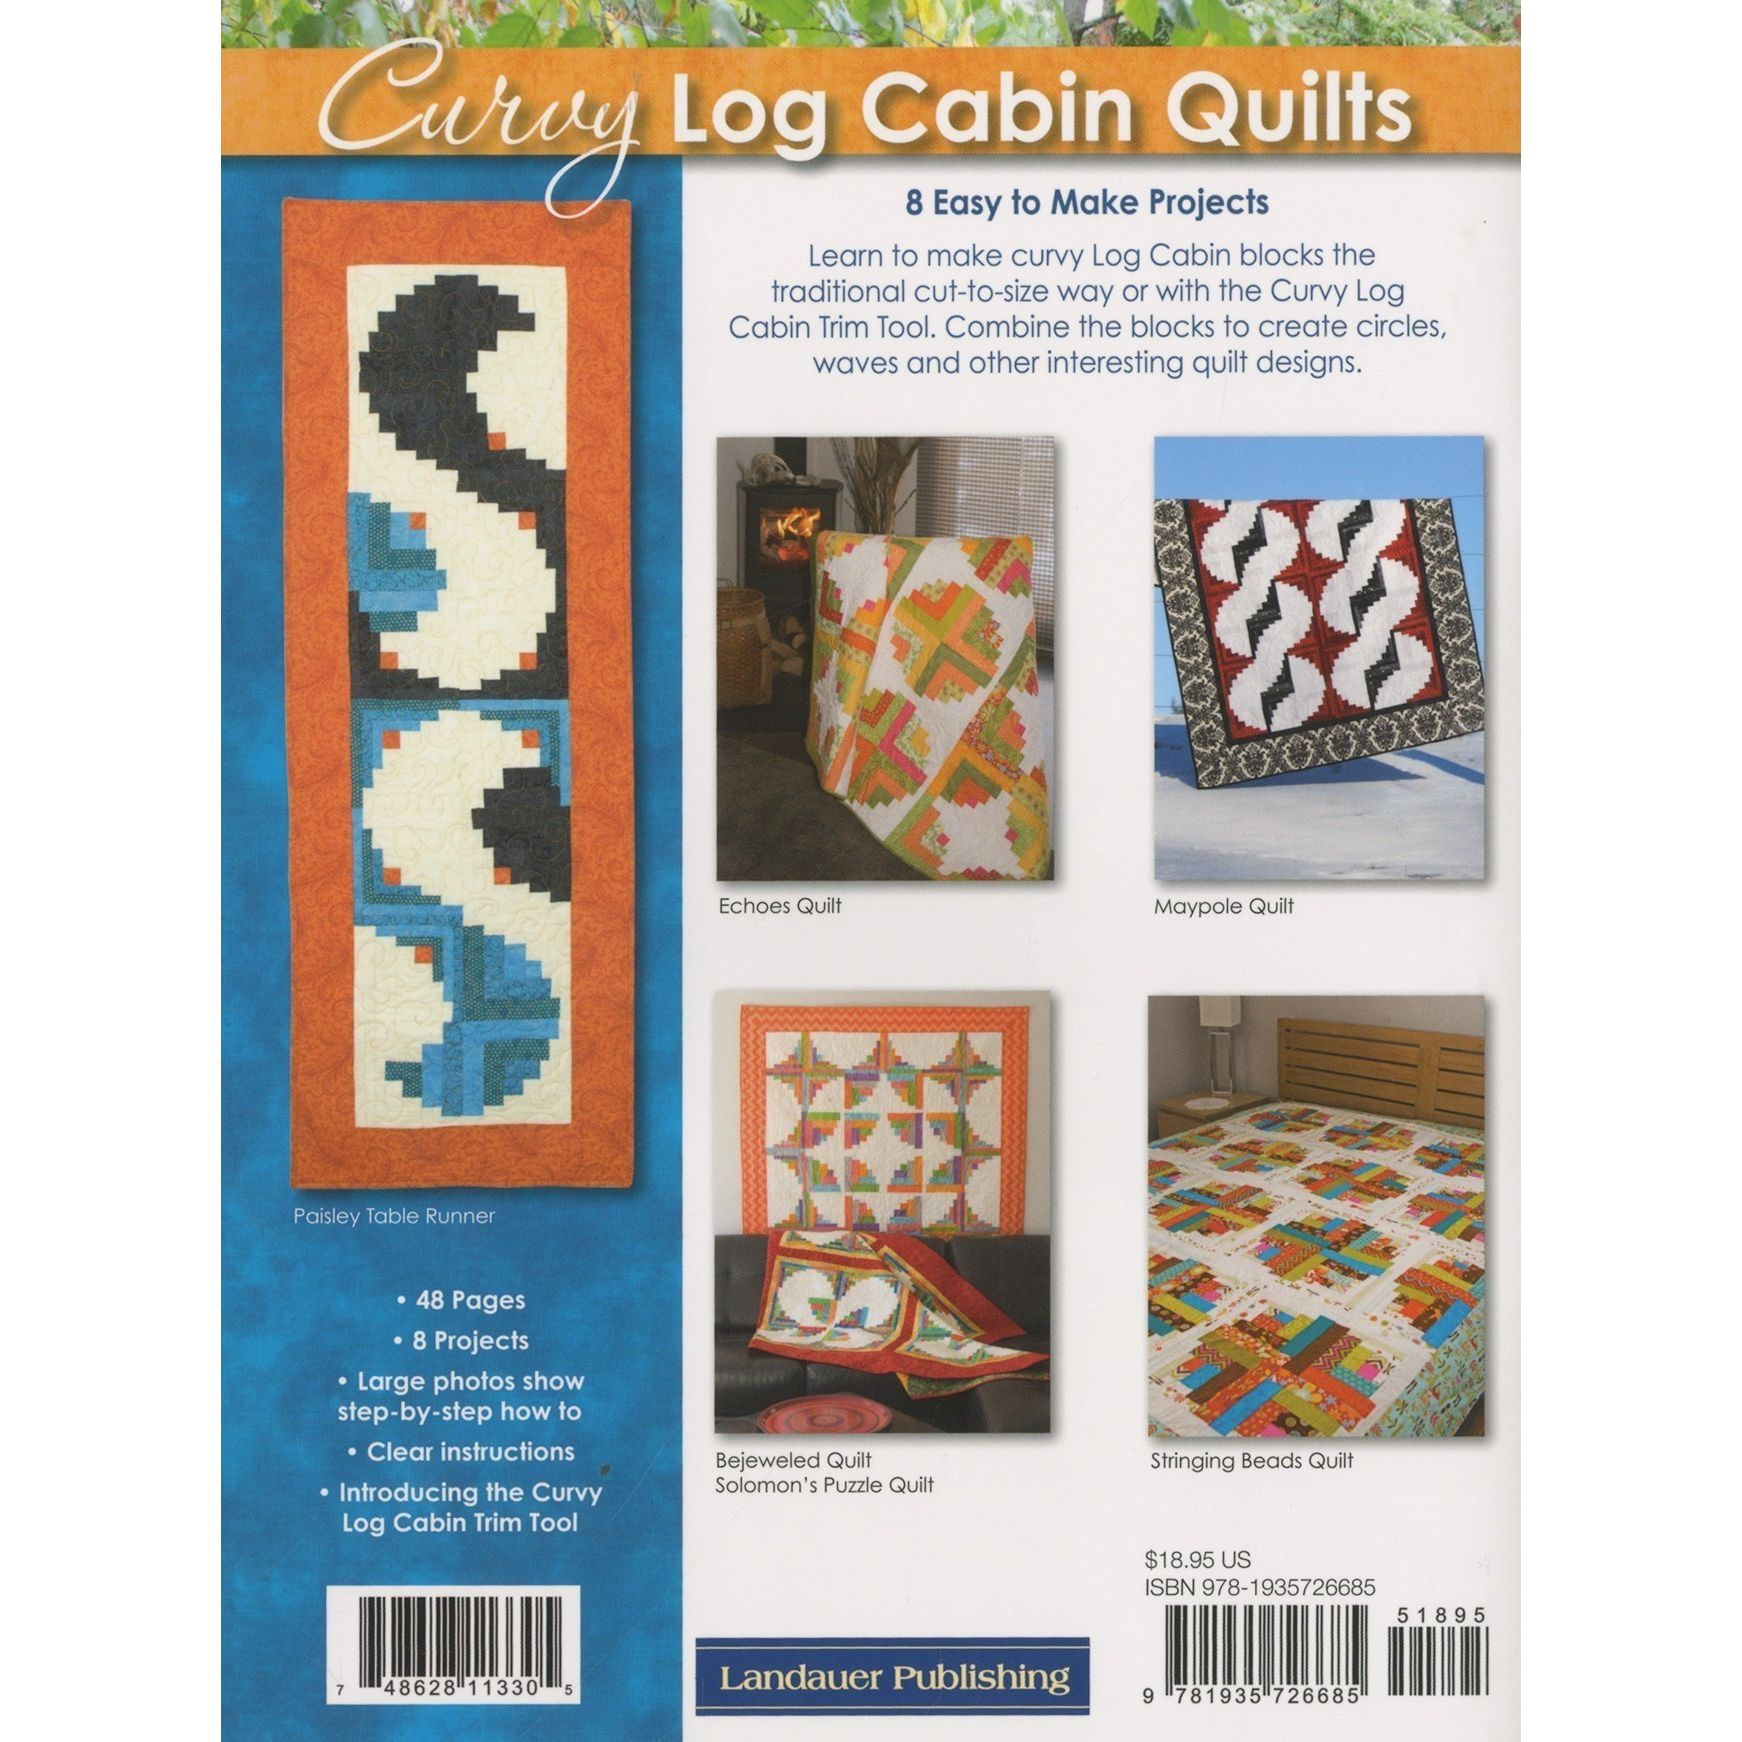 Curvy log cabin quilts book by landauer publishing for Log home books